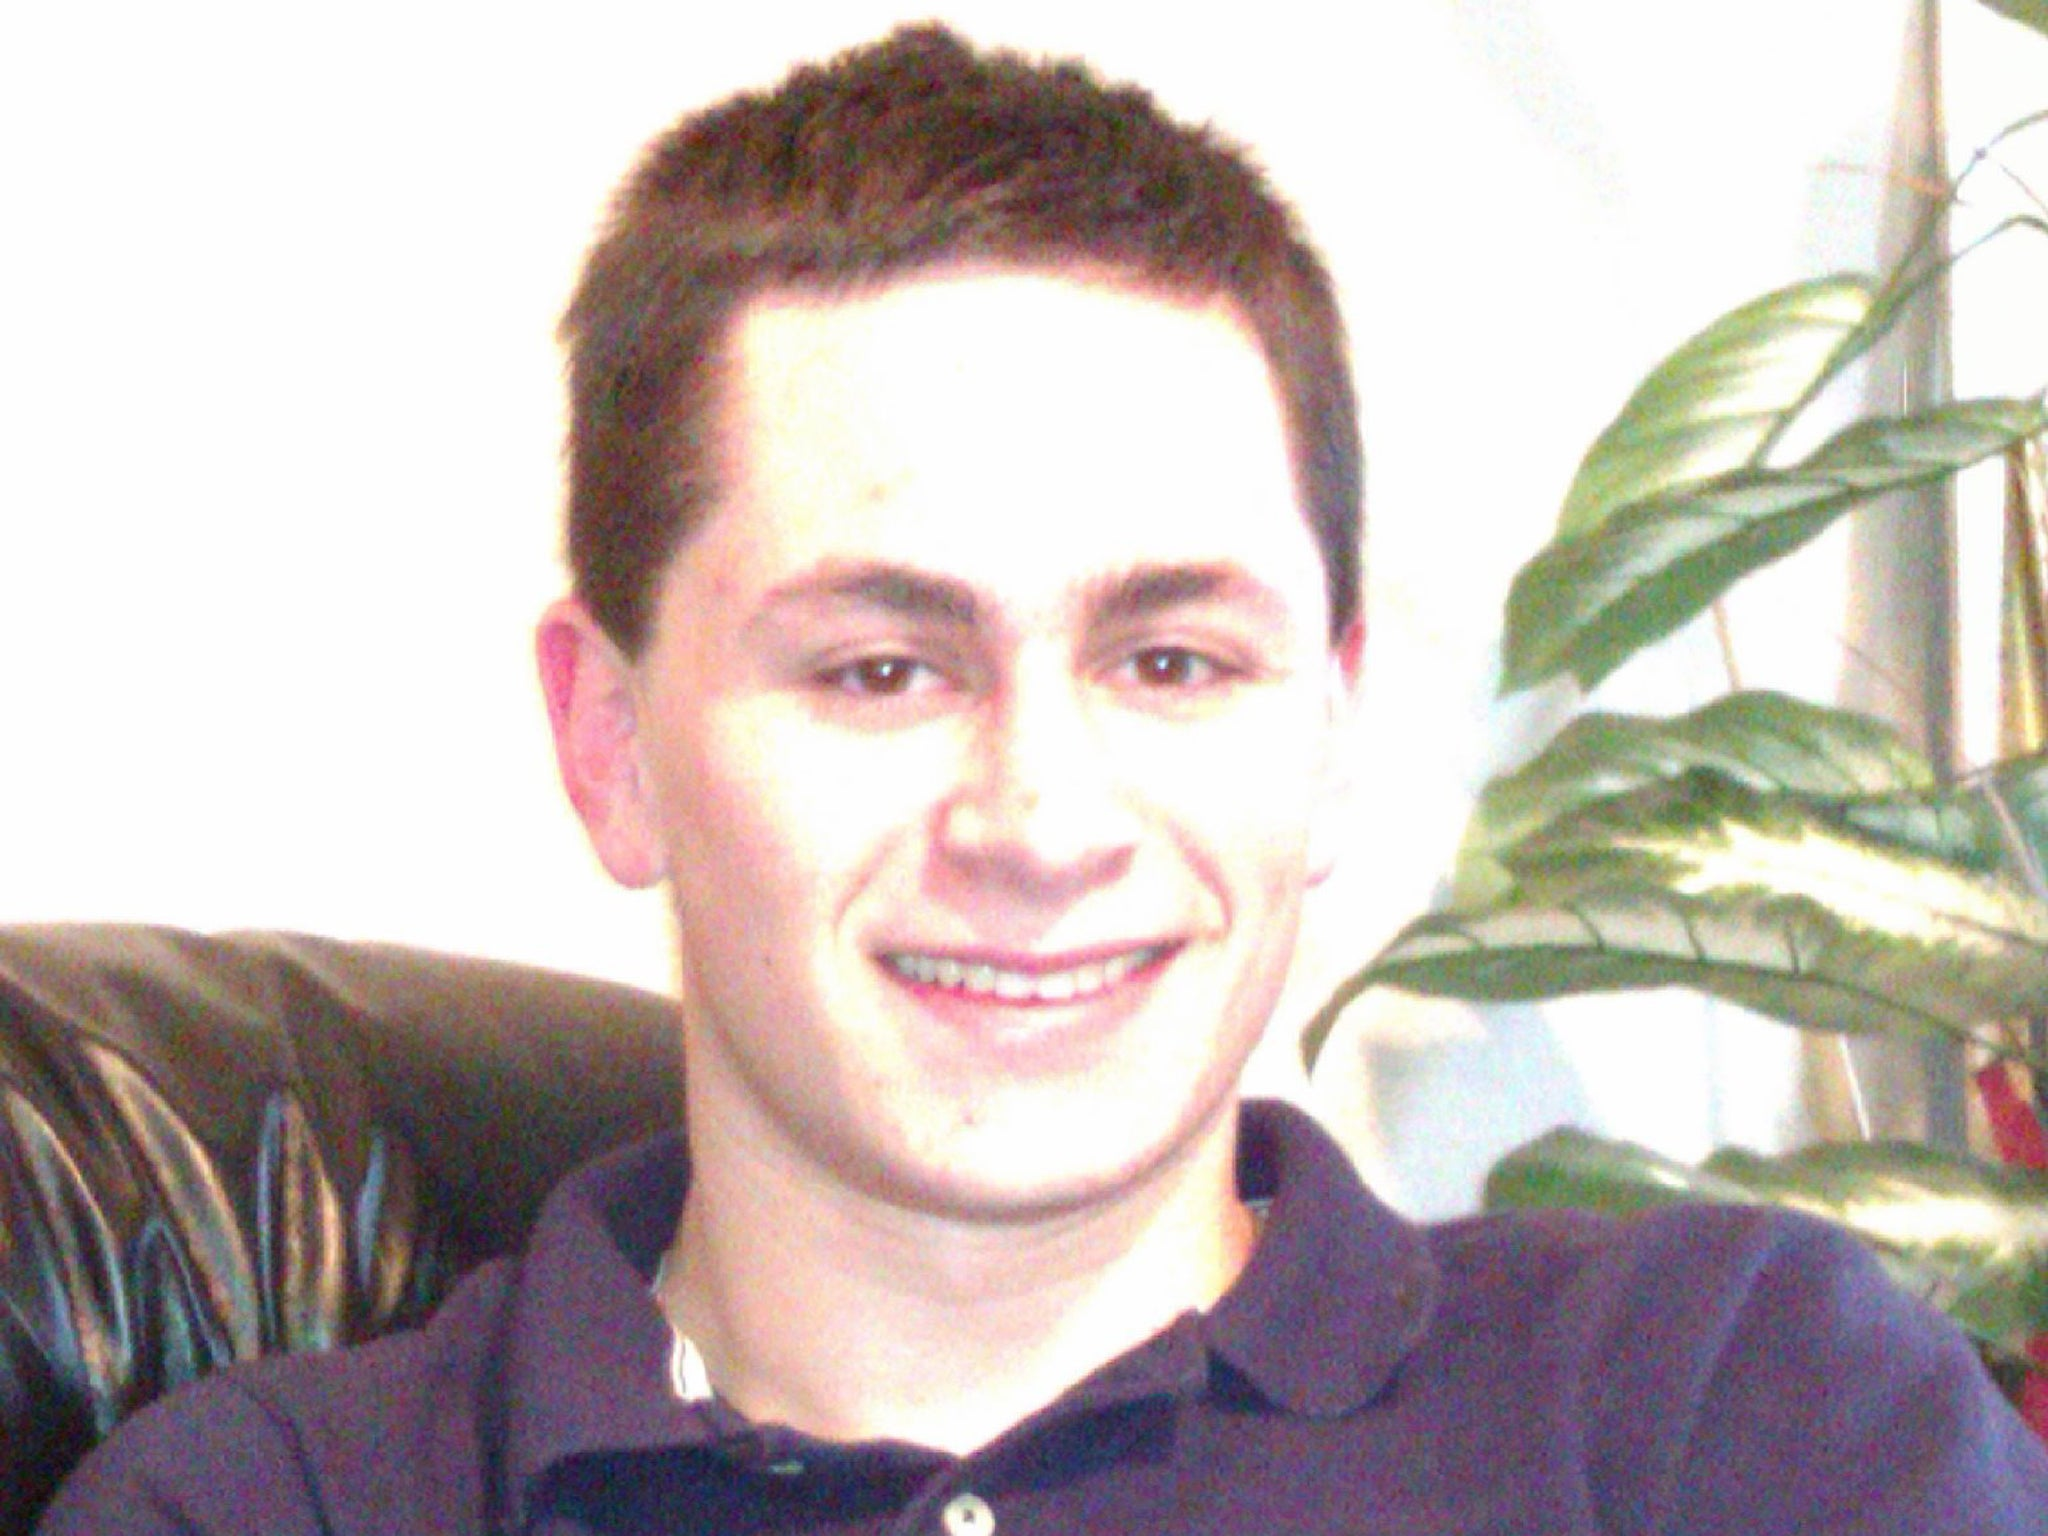 Austin bomber was part of Christian survivalist group that learned gun skills and discussed 'dangerous' chemicals